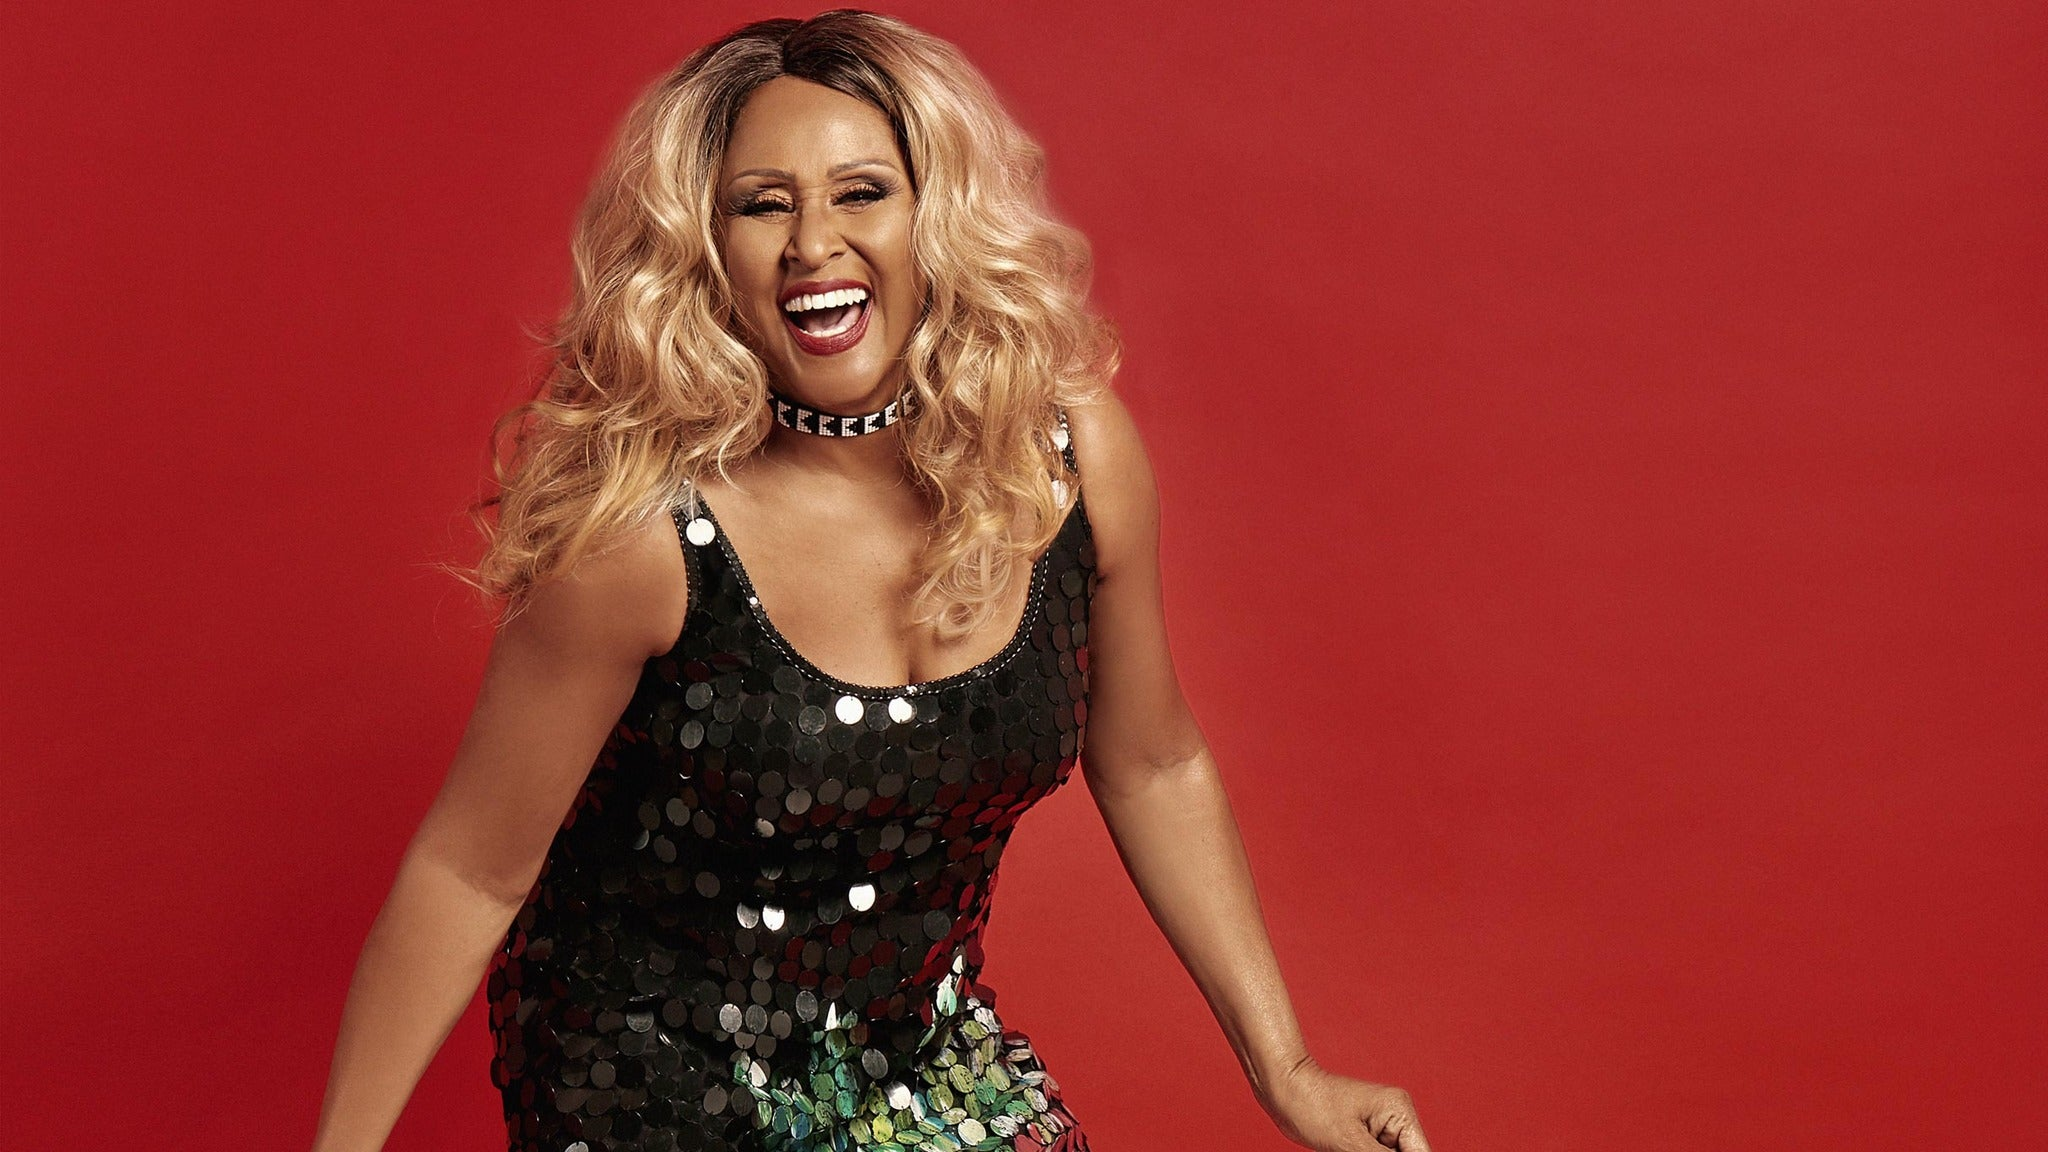 Darlene Love at Community Arts Center - PA